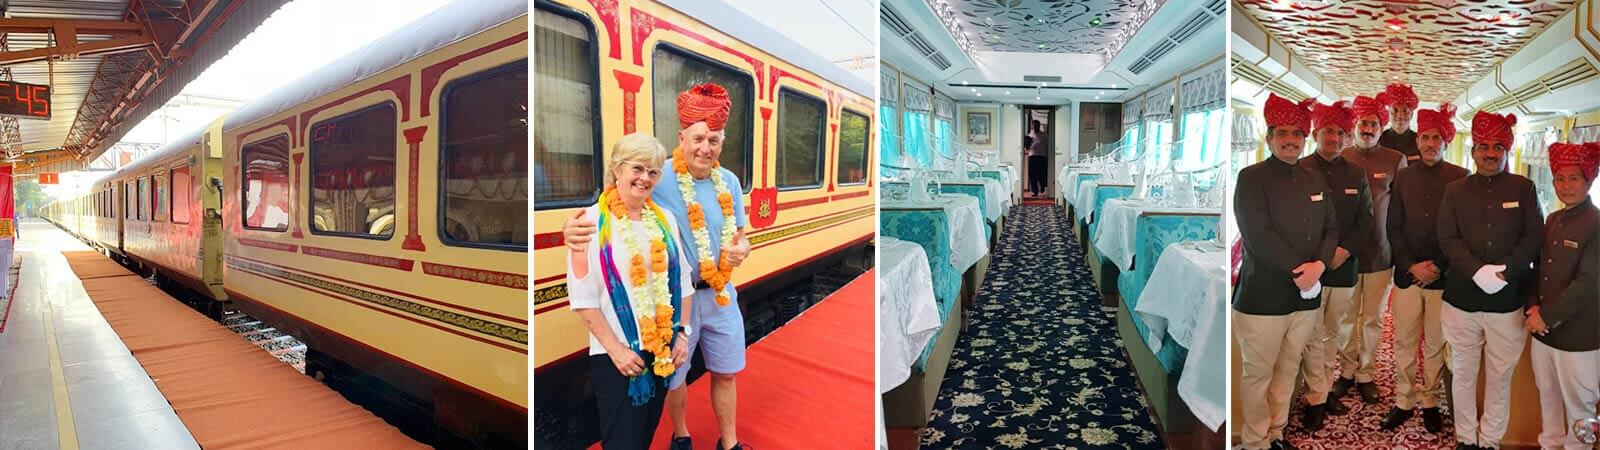 Palace on Wheels Photo Gallery